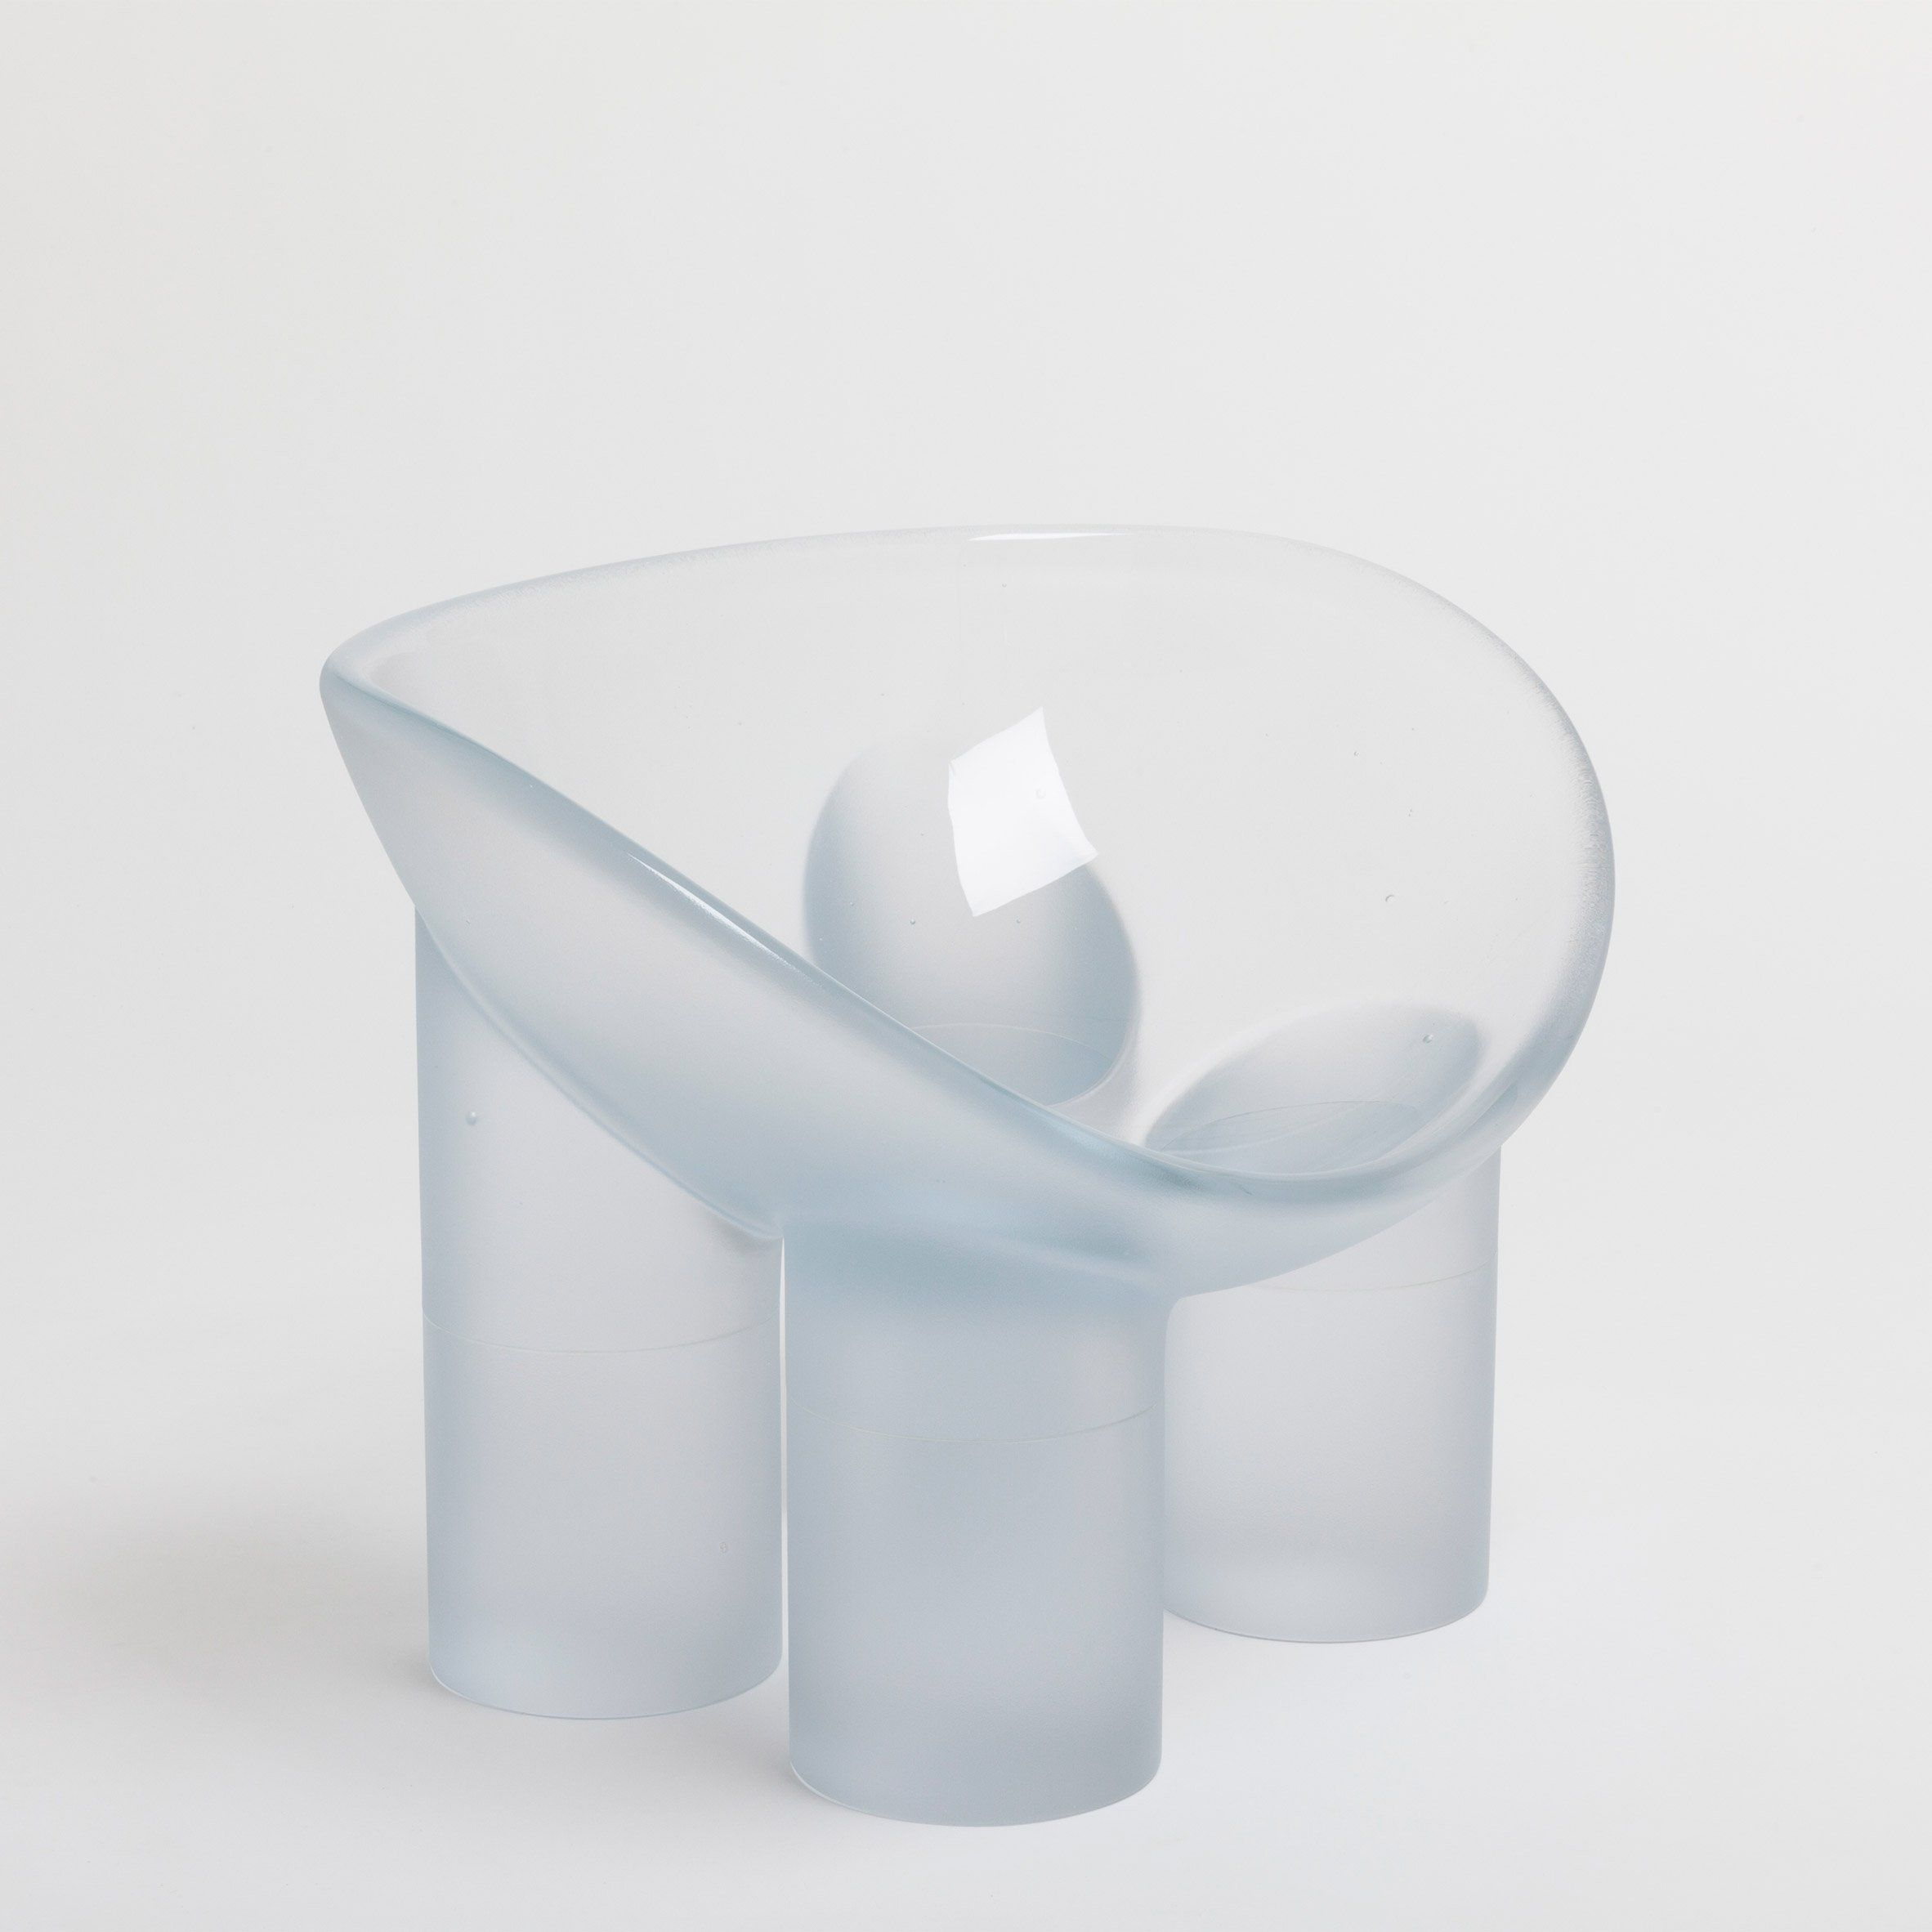 Faye Toogood\'s Roly-Poly Chair / Water (Prototype) in Assemblage 5 ...